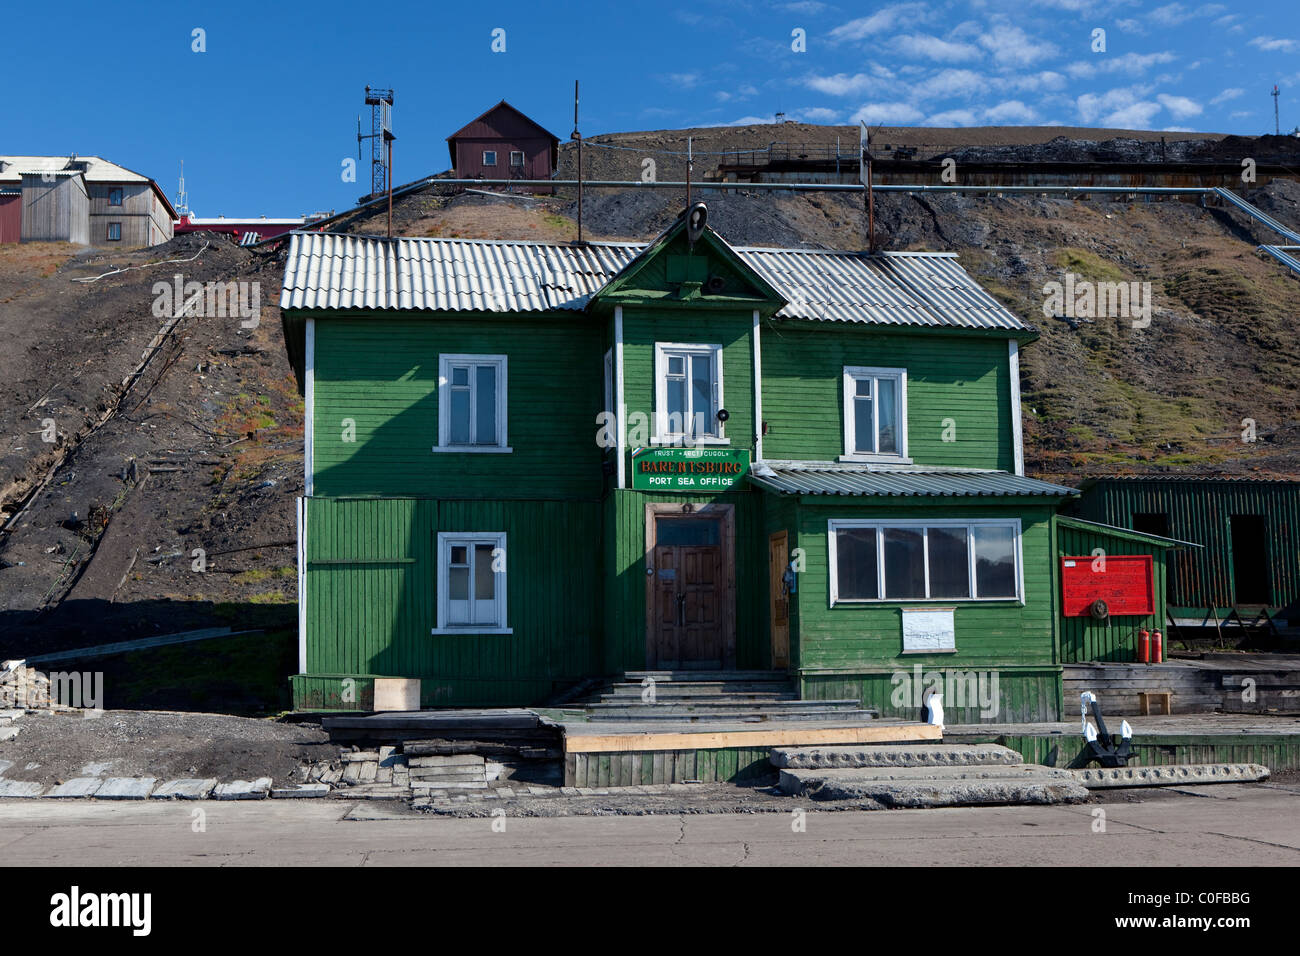 The Barentsburg port sea office building, a Russian coal mining town in the Norwegian Archipelego of Svalbard - Stock Image